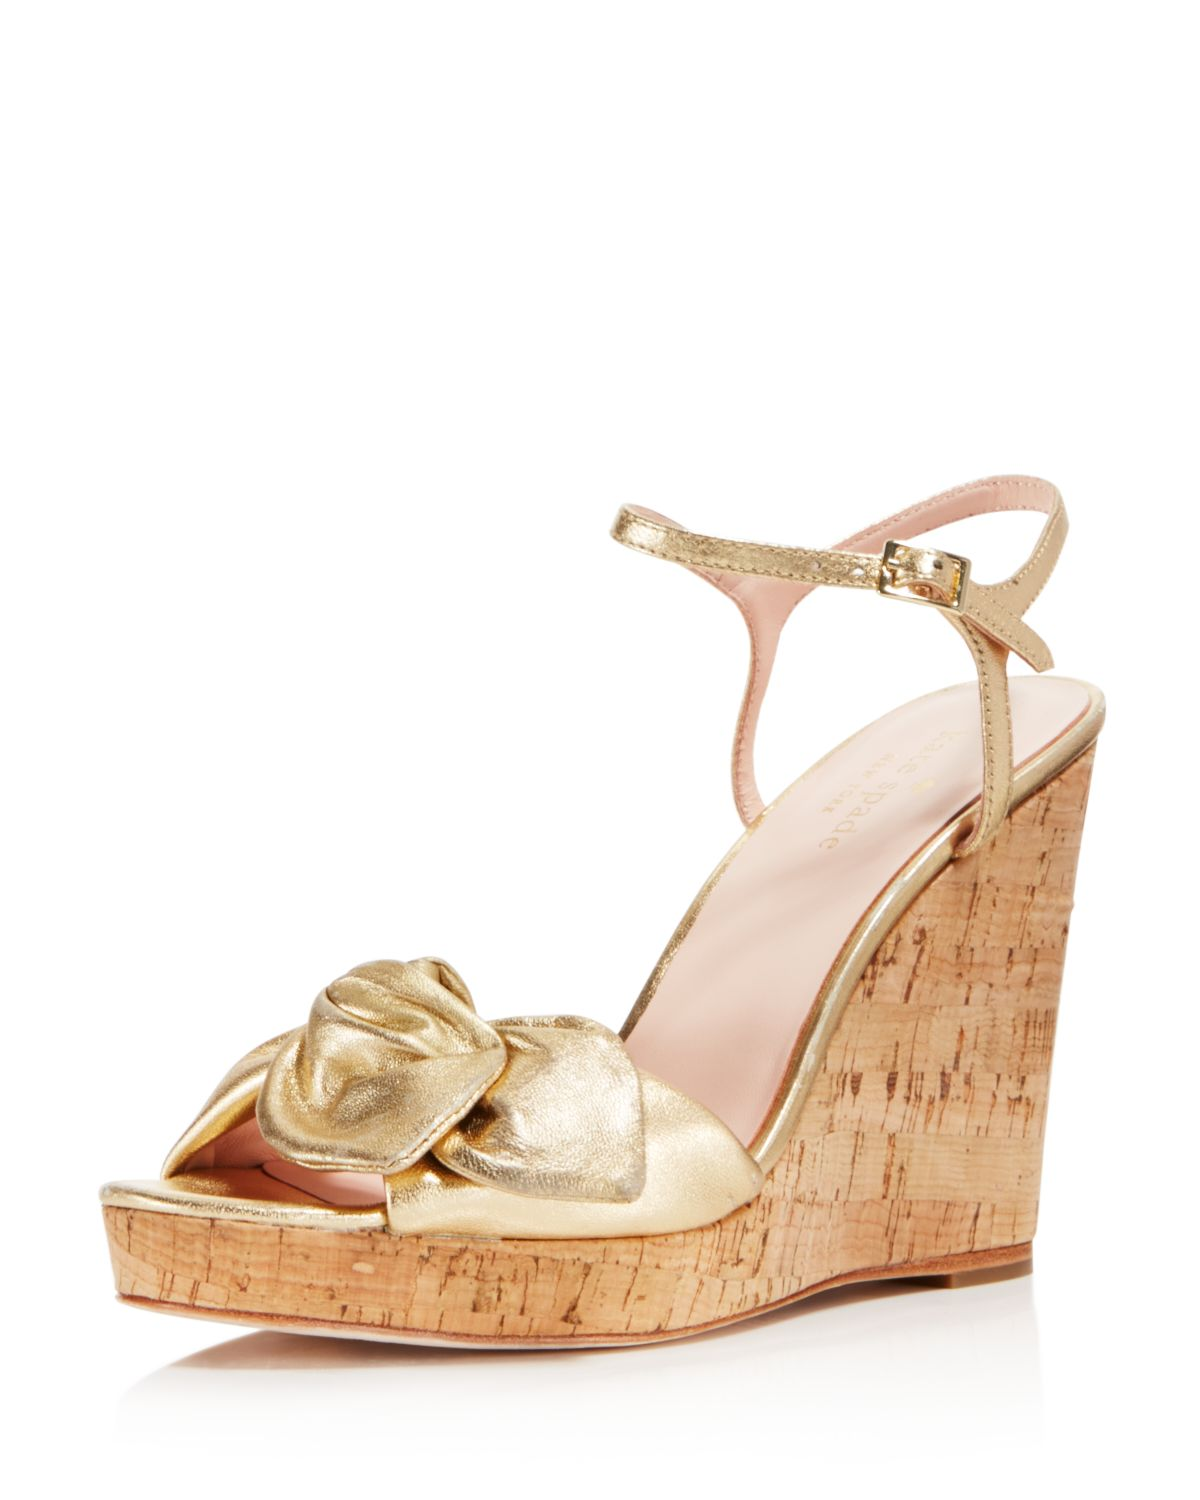 Kate Spade New York Metallis Slingback Sandals